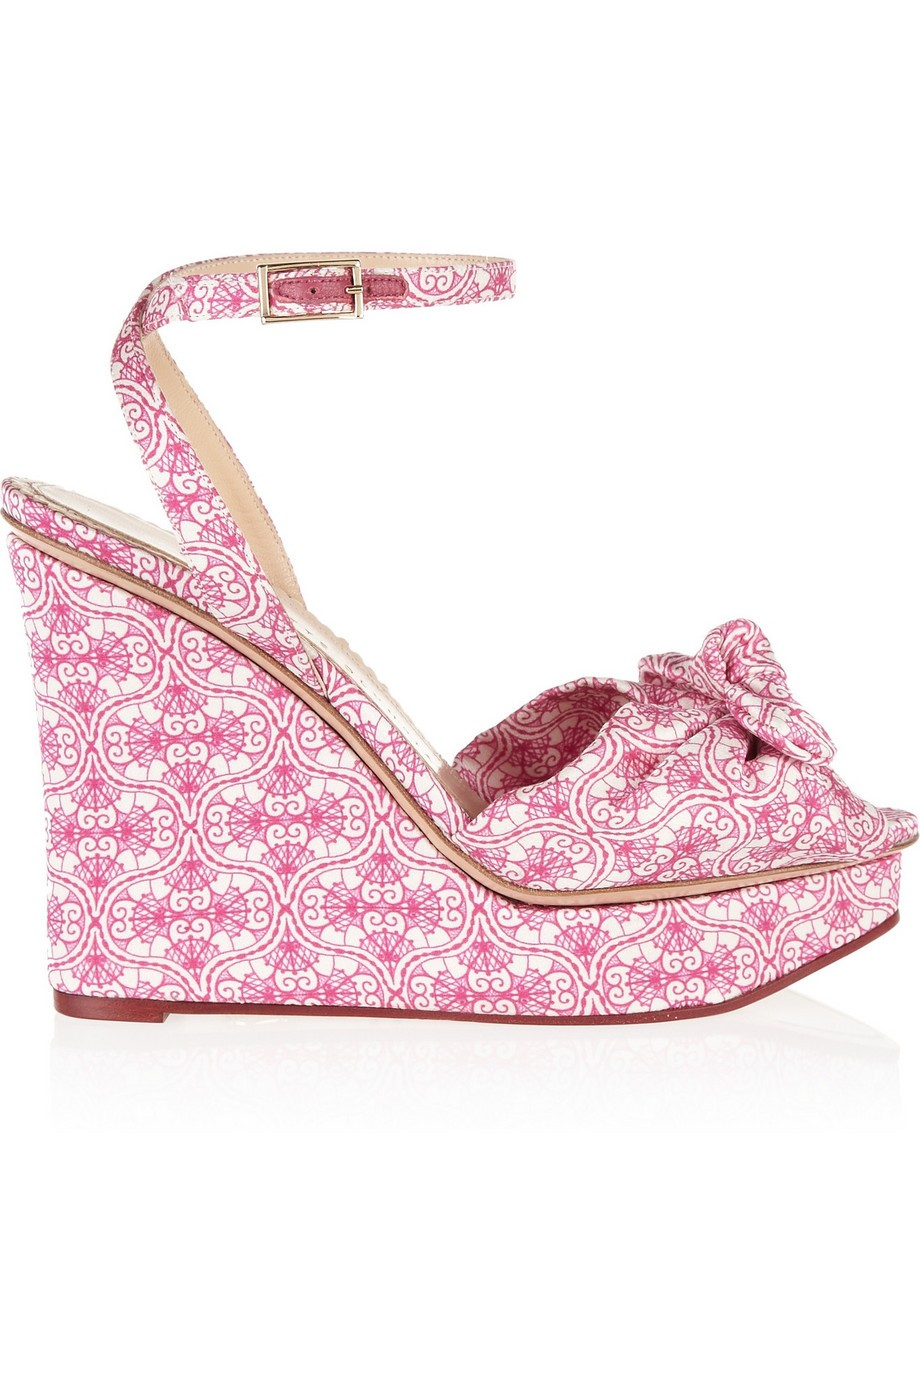 Miranda 110 printed satin wedge sandals